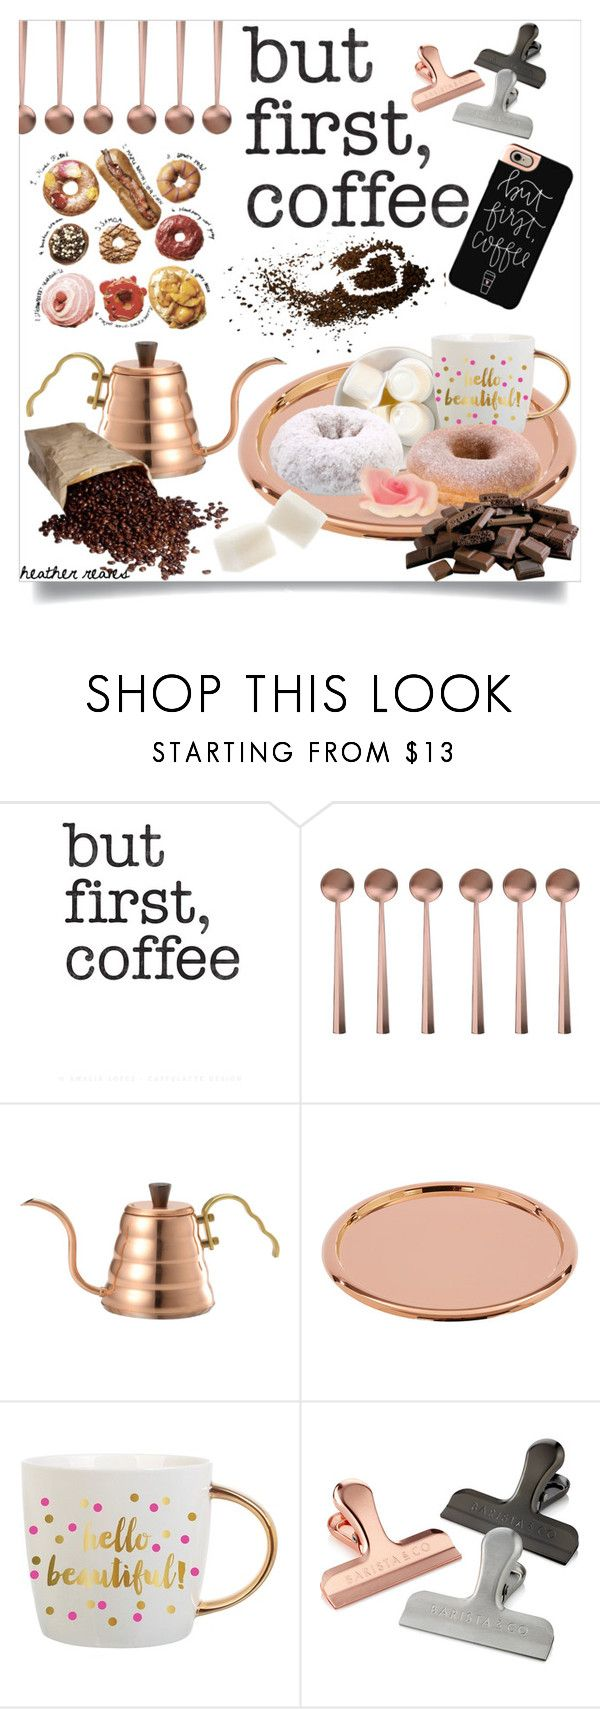 """""""Coffee First"""" by heather-reaves ❤ liked on Polyvore featuring interior, interiors, interior design, home, home decor, interior decorating, Retrò, canvas, Hario and Tom Dixon"""